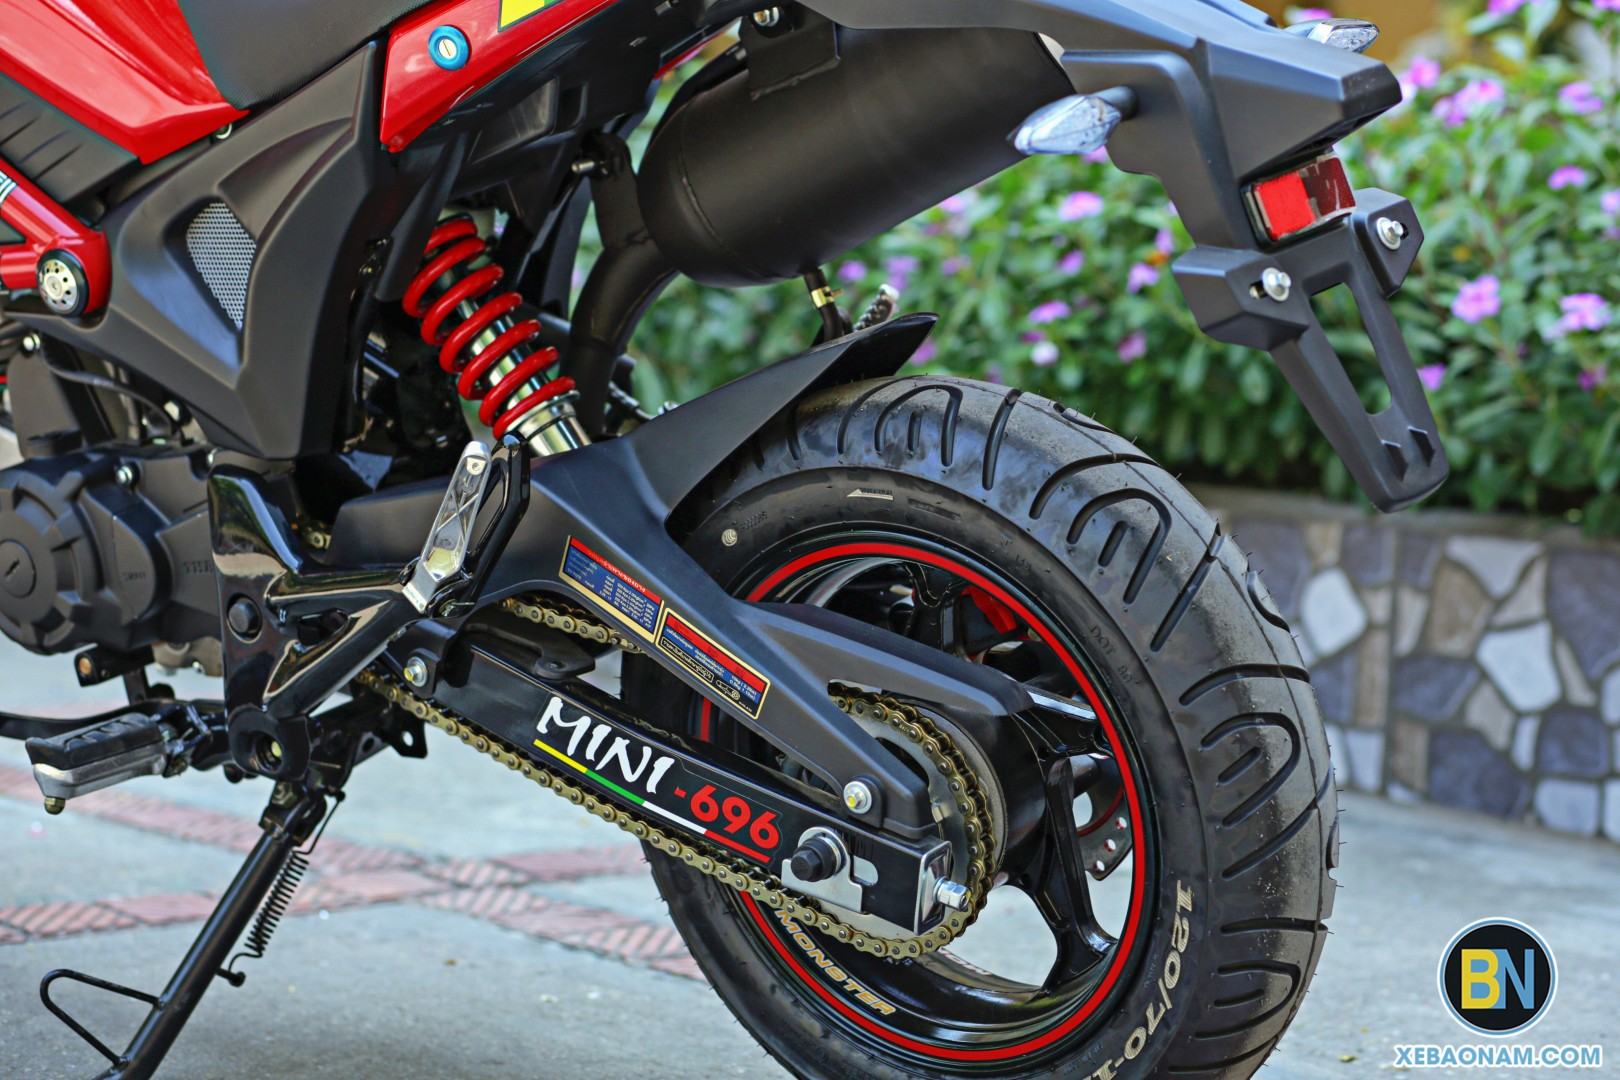 xe-may-ducati-mini-monster-110-xebaonam(10)